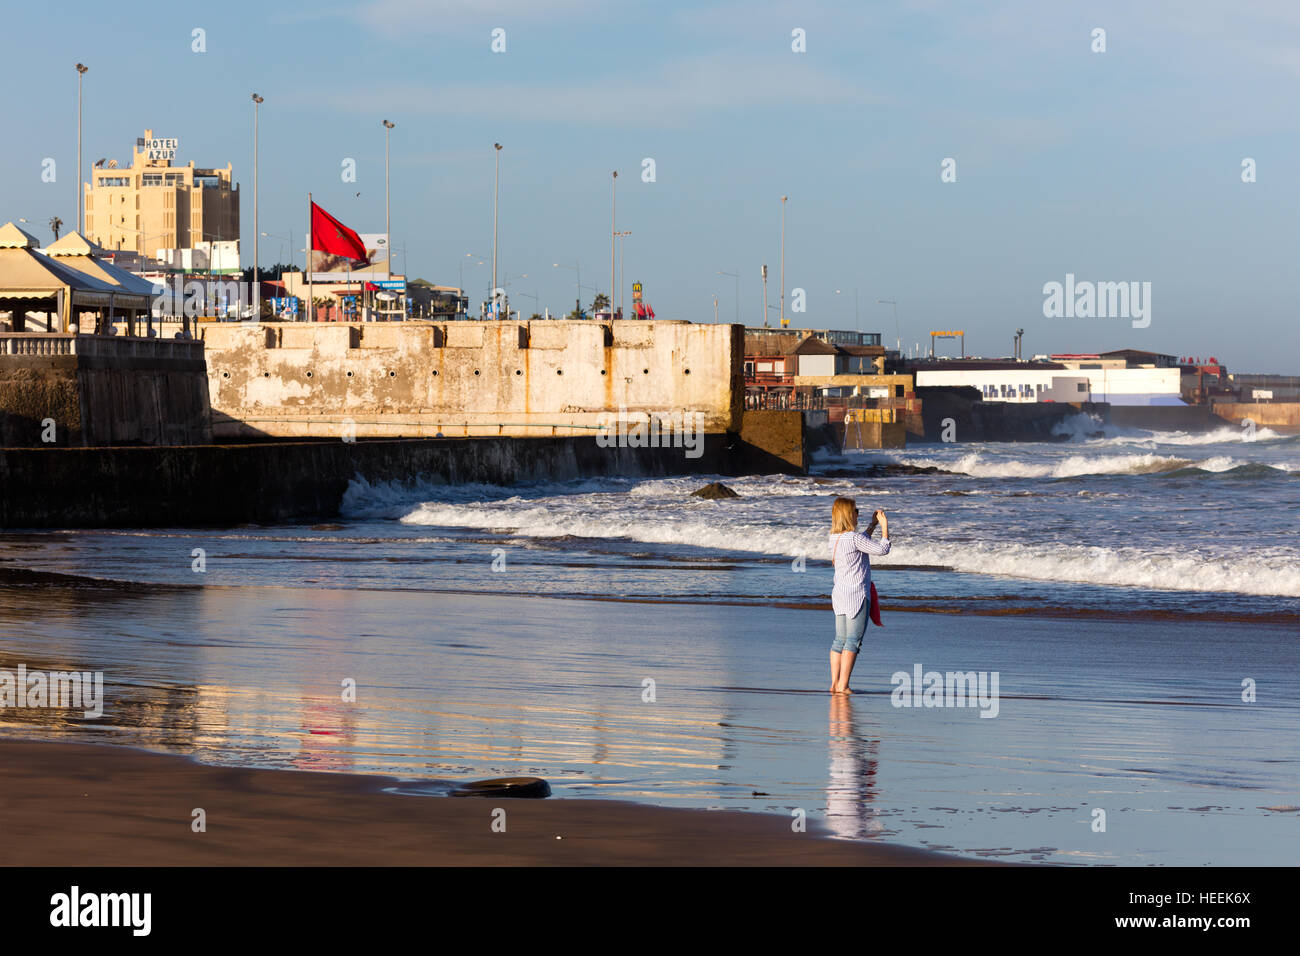 Female tourist shooting selfy, Atlantic ocean beach, Casablanca, Morocco - Stock Image